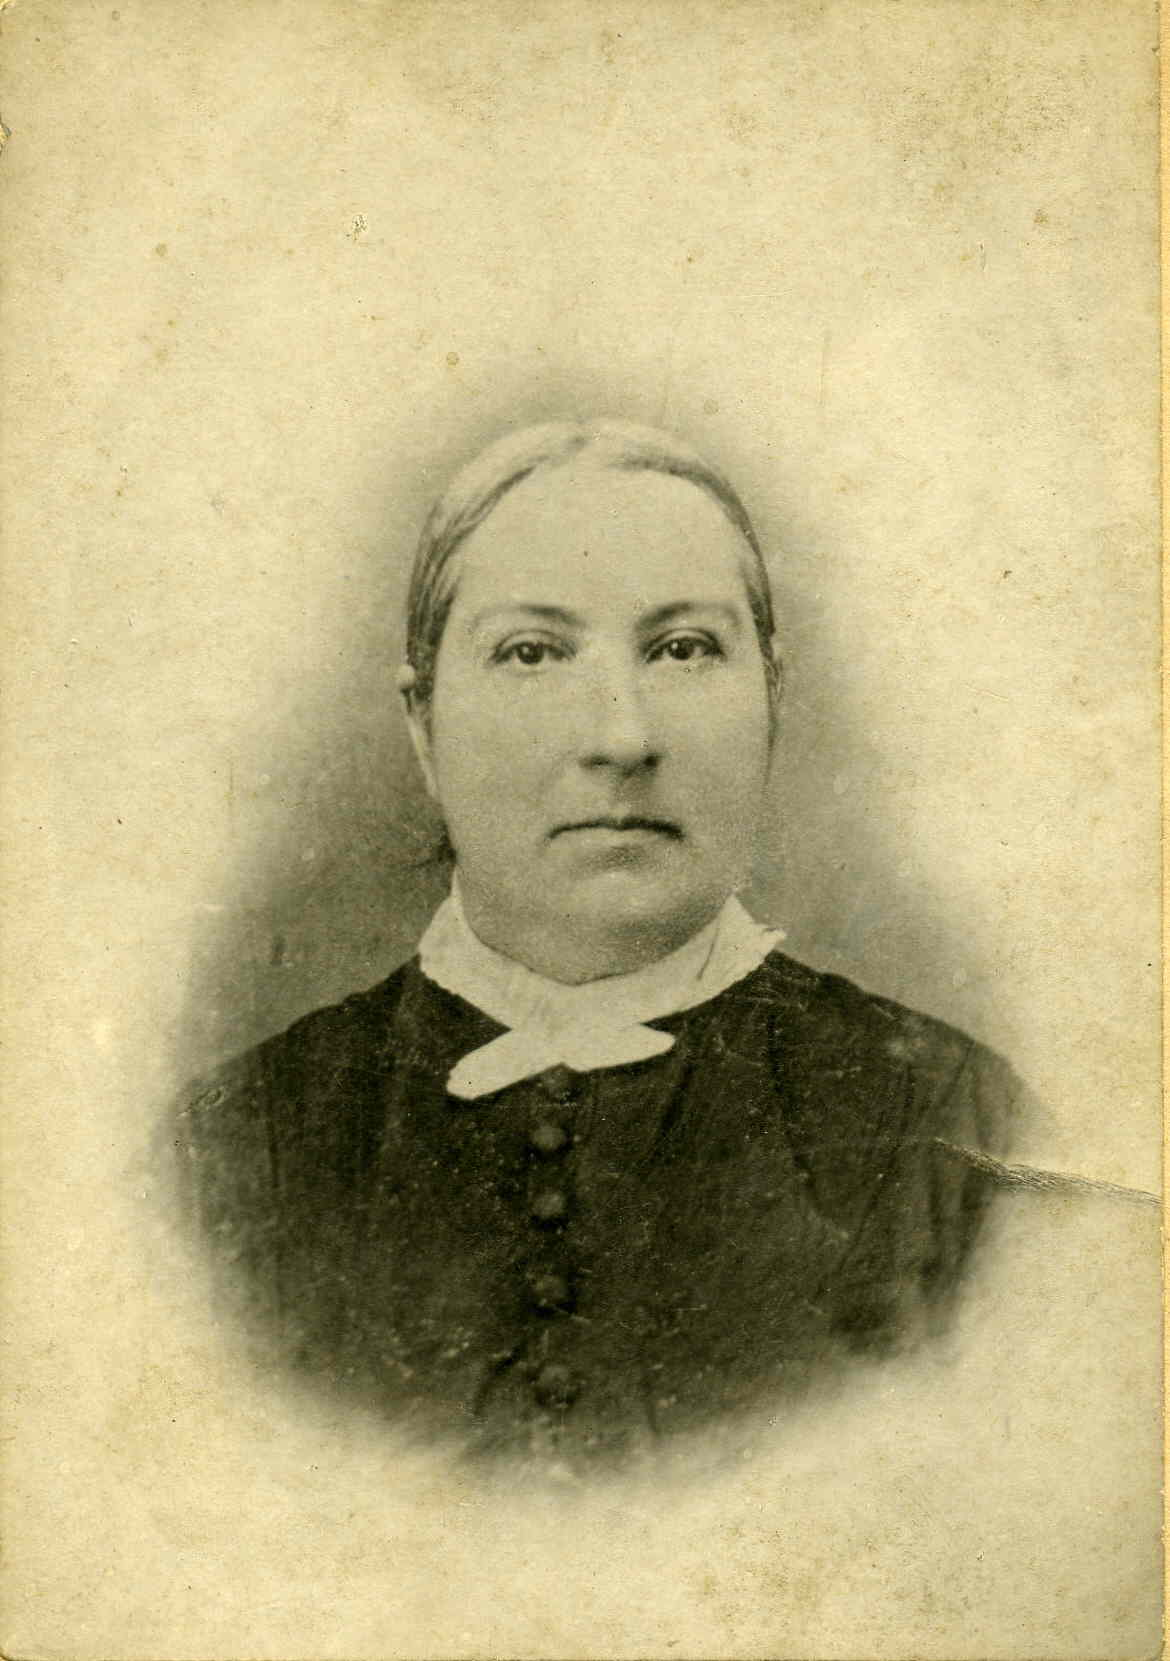 Photo of Lavina (Bowman) Geiger, mother of Mary Geiger of Somerset County, PA.